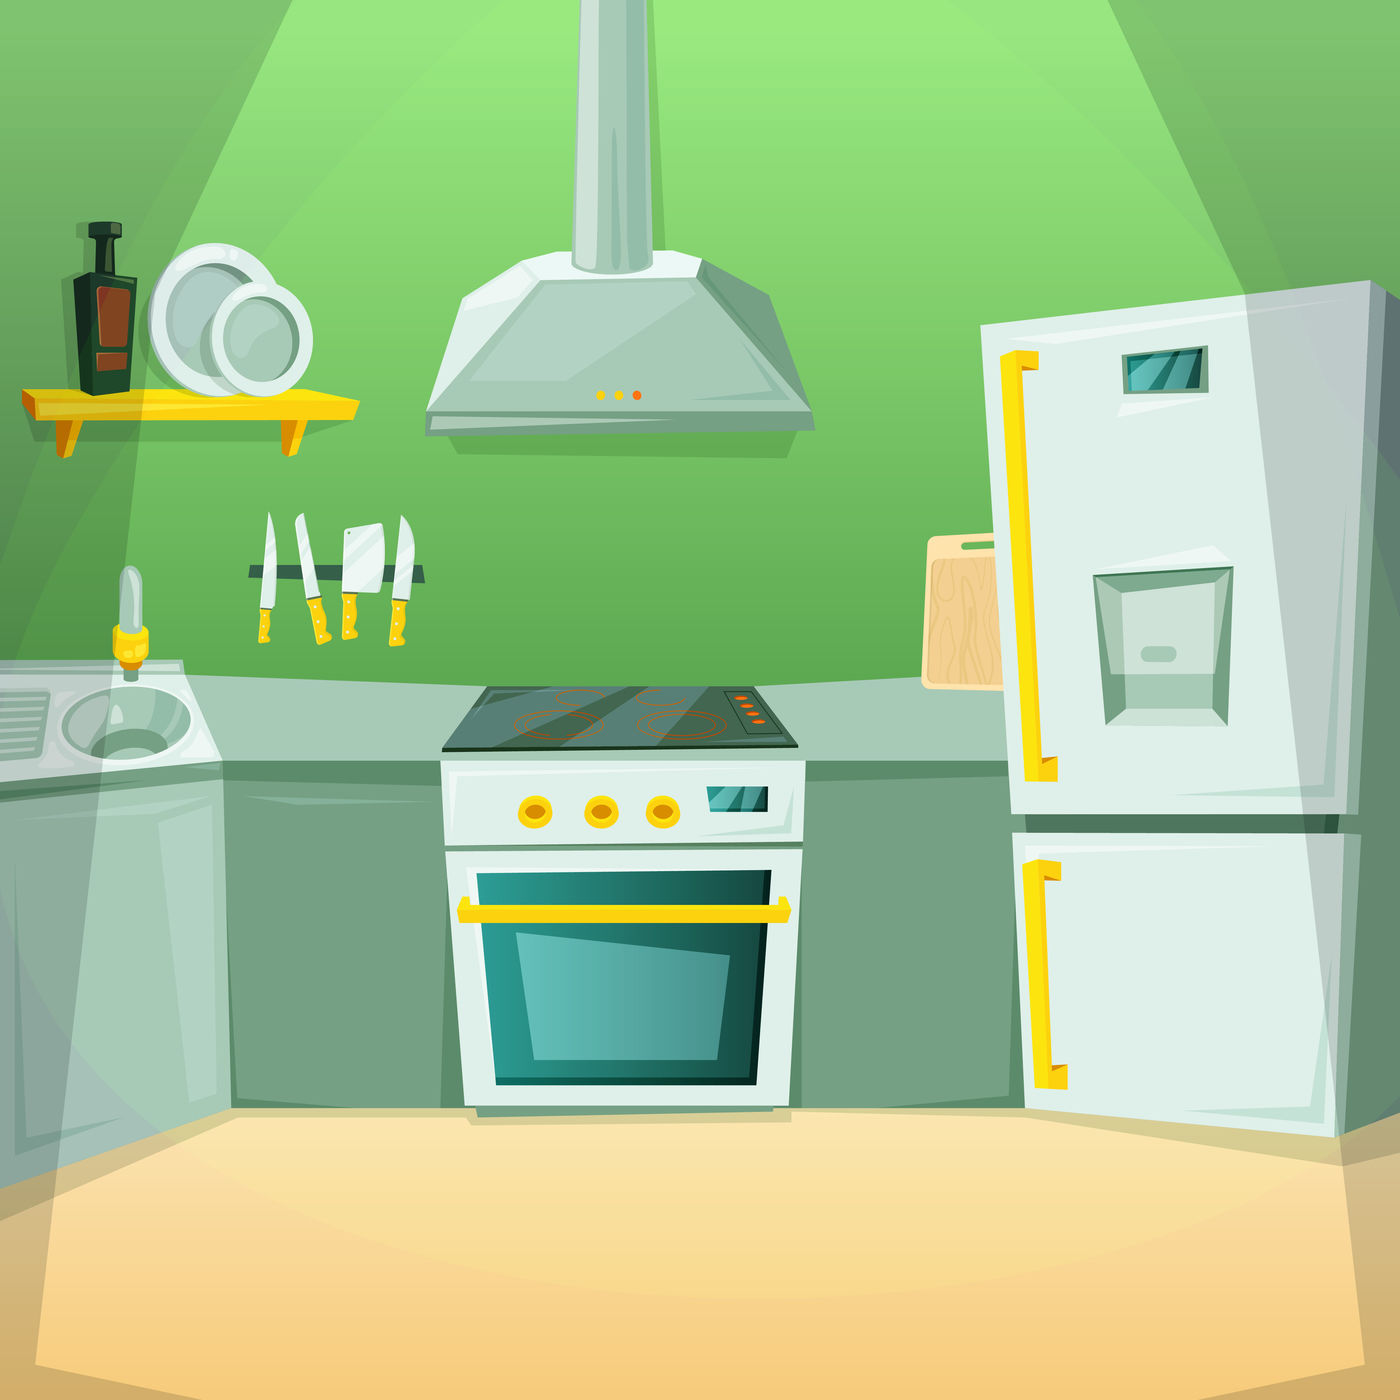 Cartoon Pictures Of Kitchen Interior With Different Furniture Items By Onyx Thehungryjpeg Com